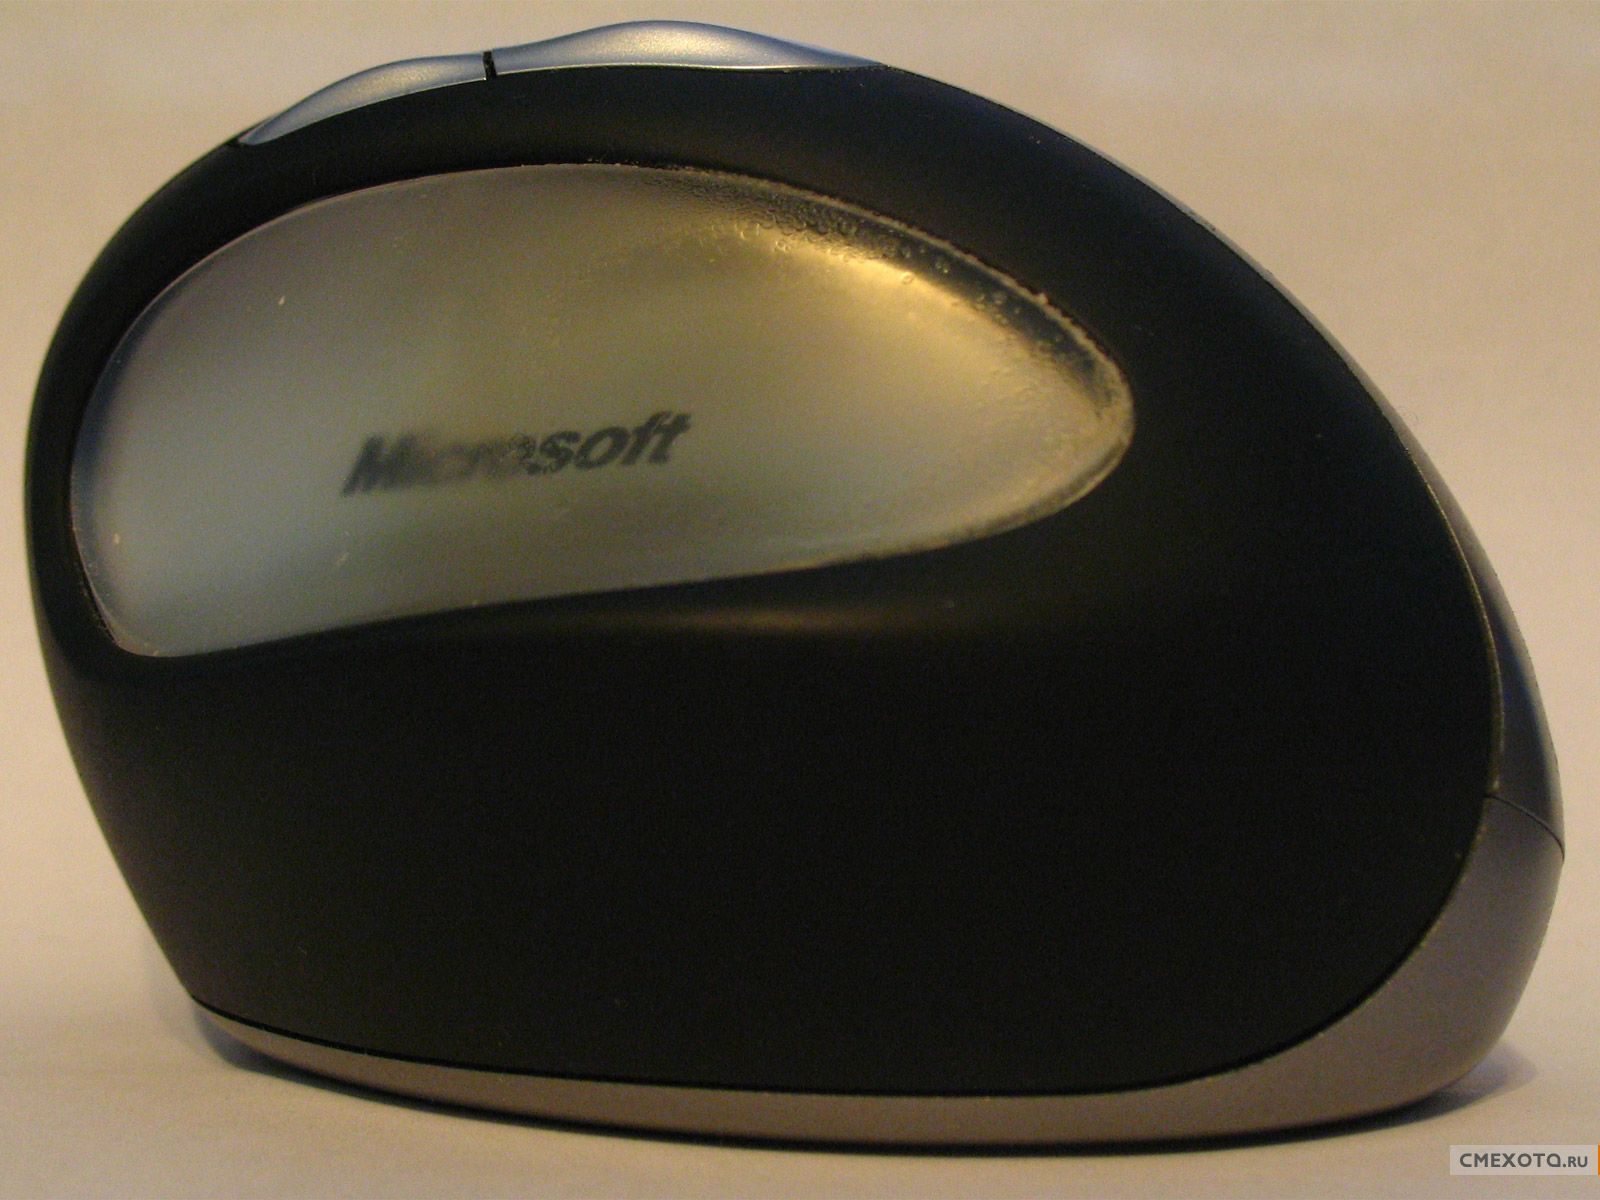 ����� ���������� Microsoft Natural Ergonomic 7000 (��� ������ �����)